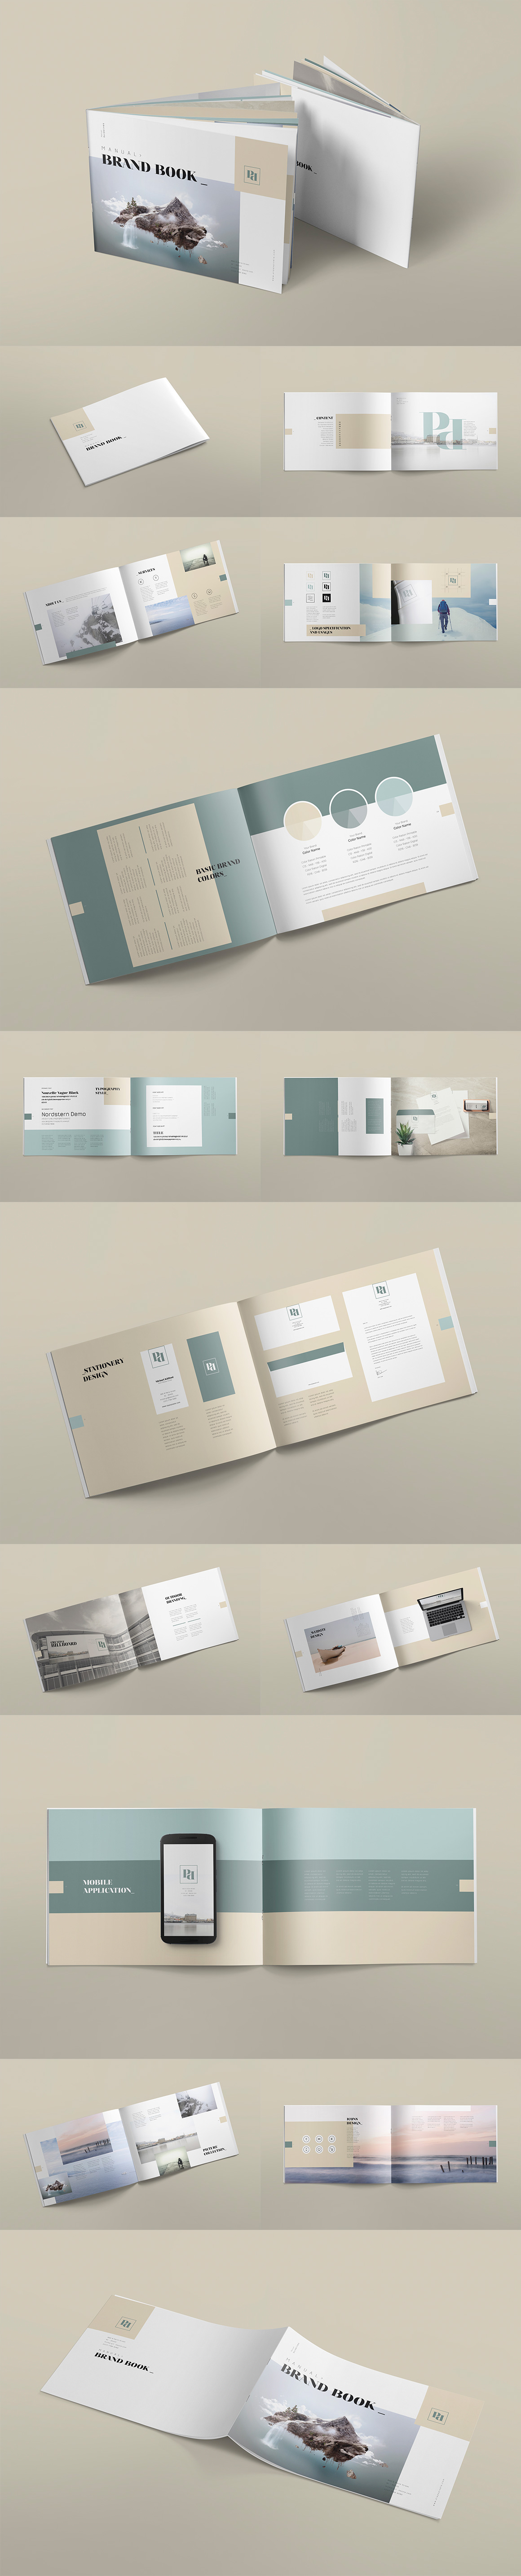 Style Guide & Brand Book Templates-strip18